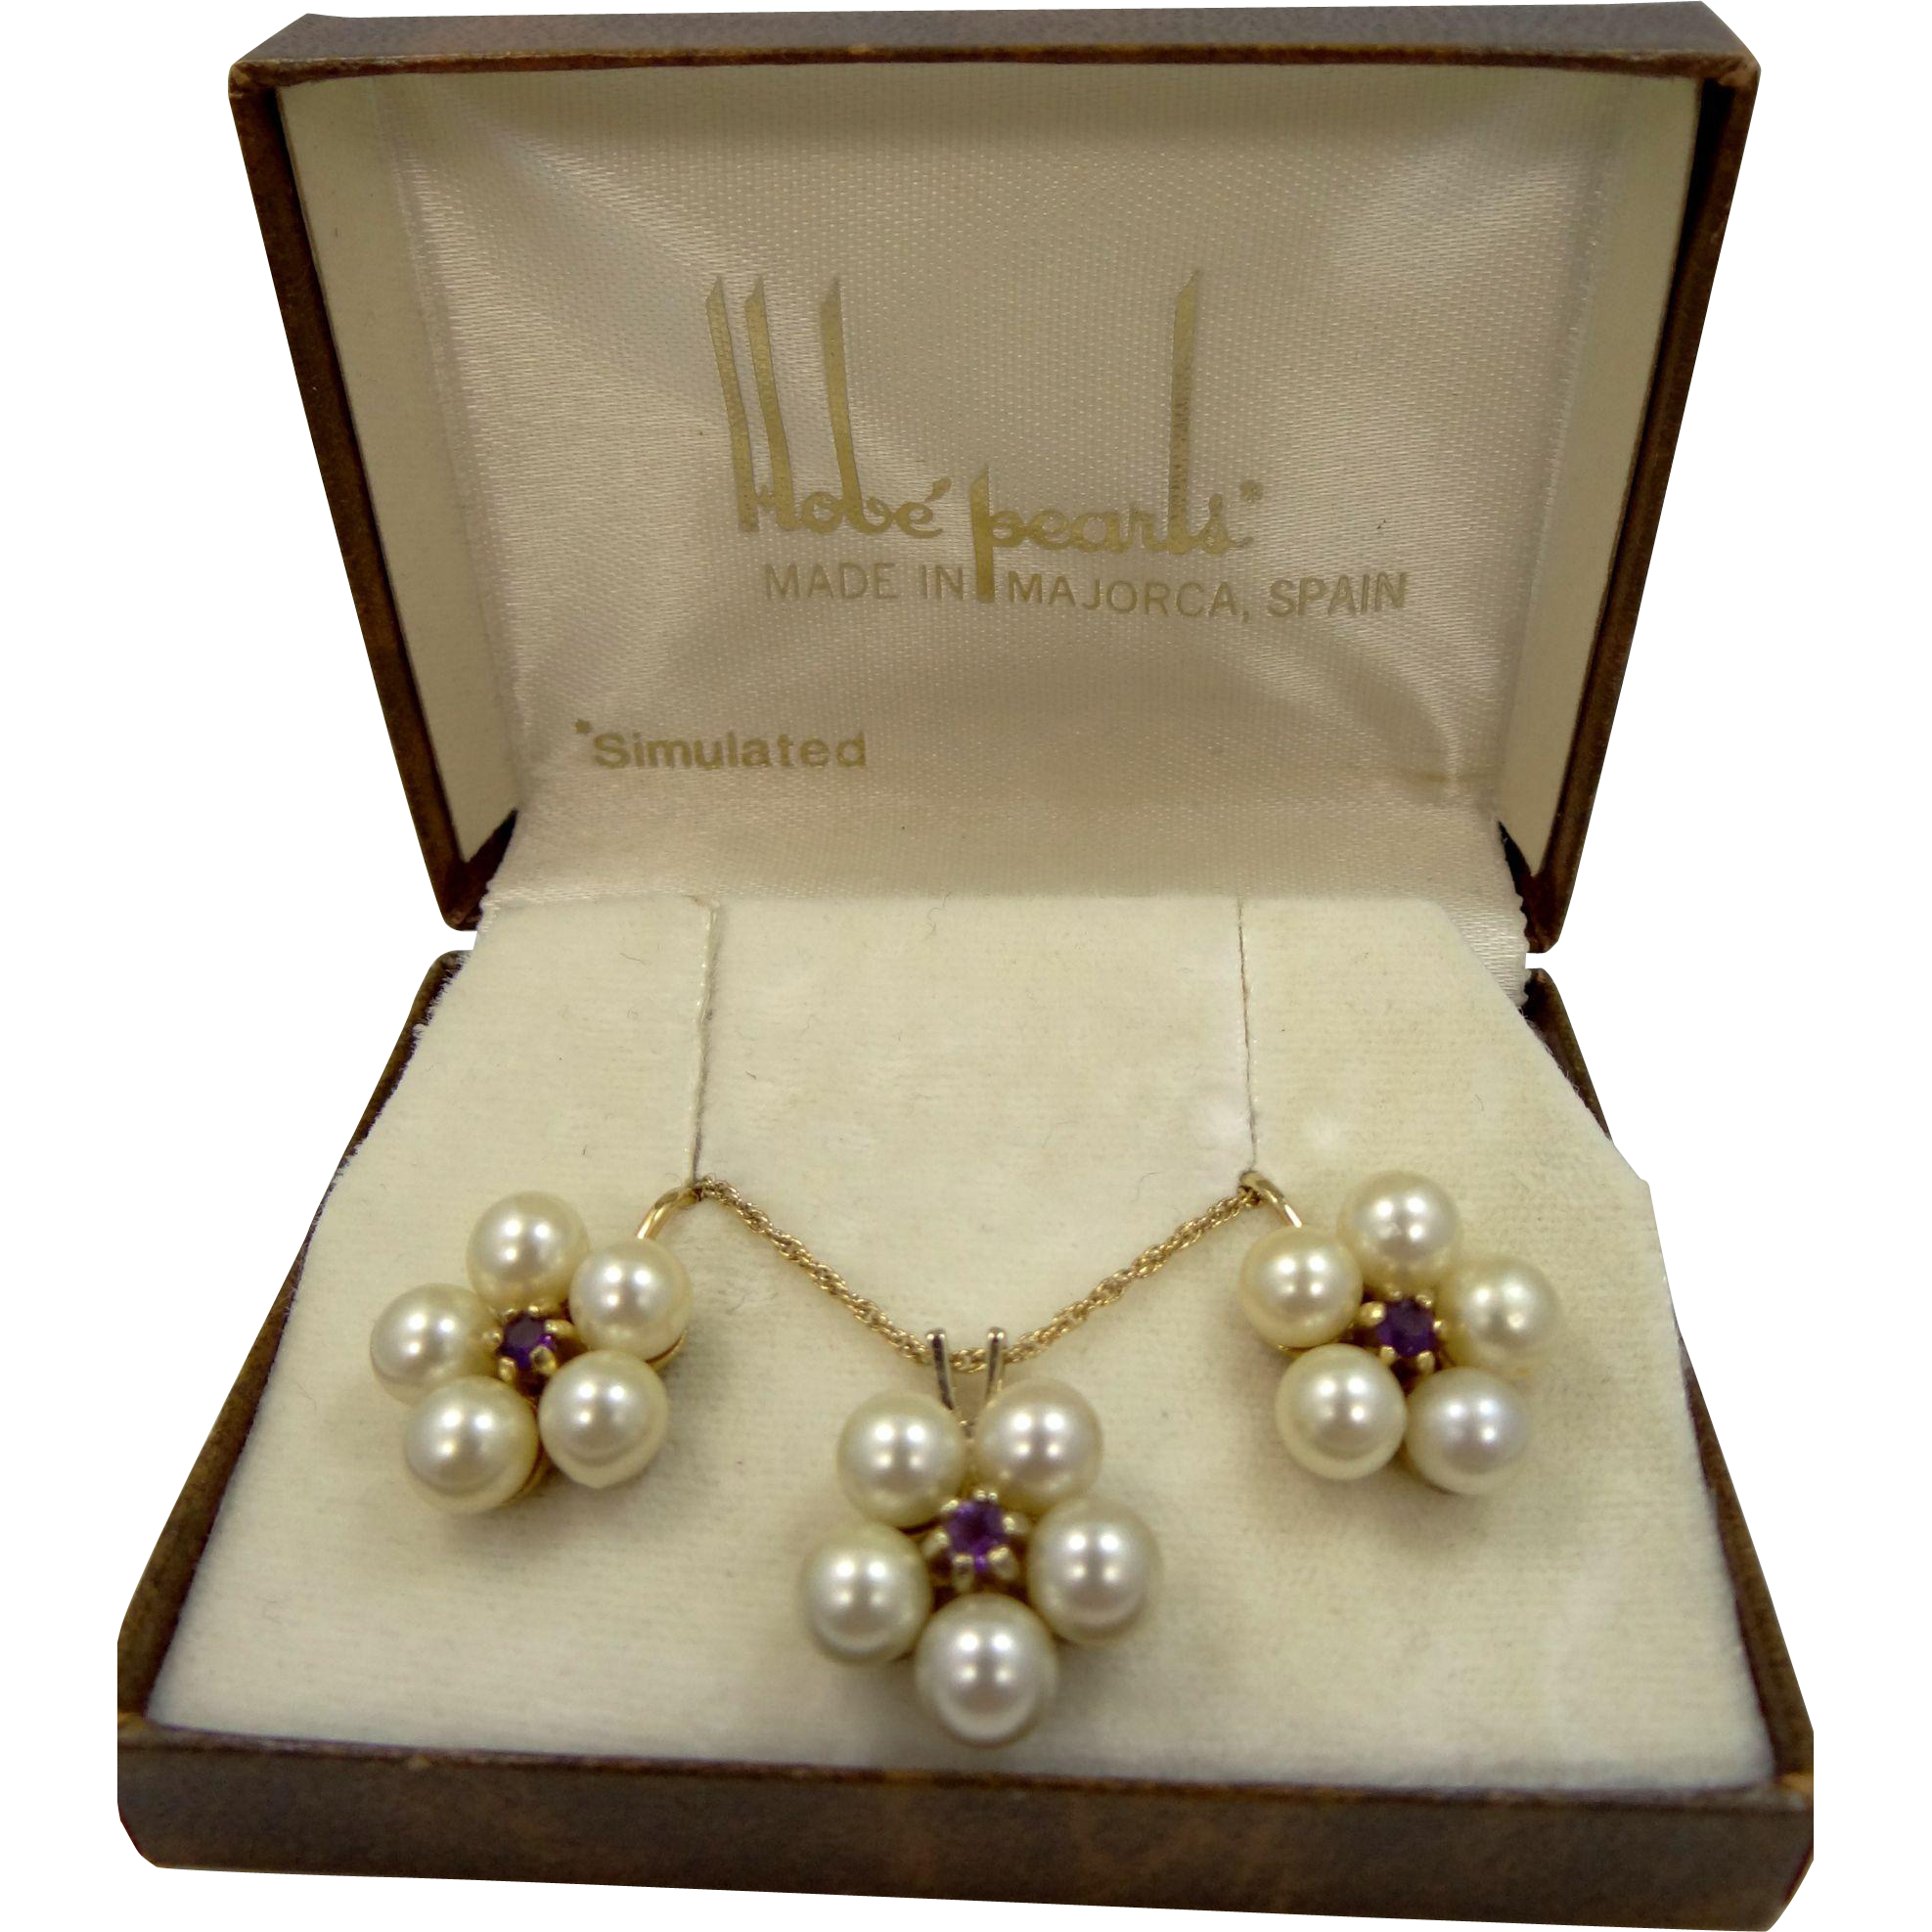 Hobe Faux Pearls Necklace and Matching Earrings Mint in Original Box